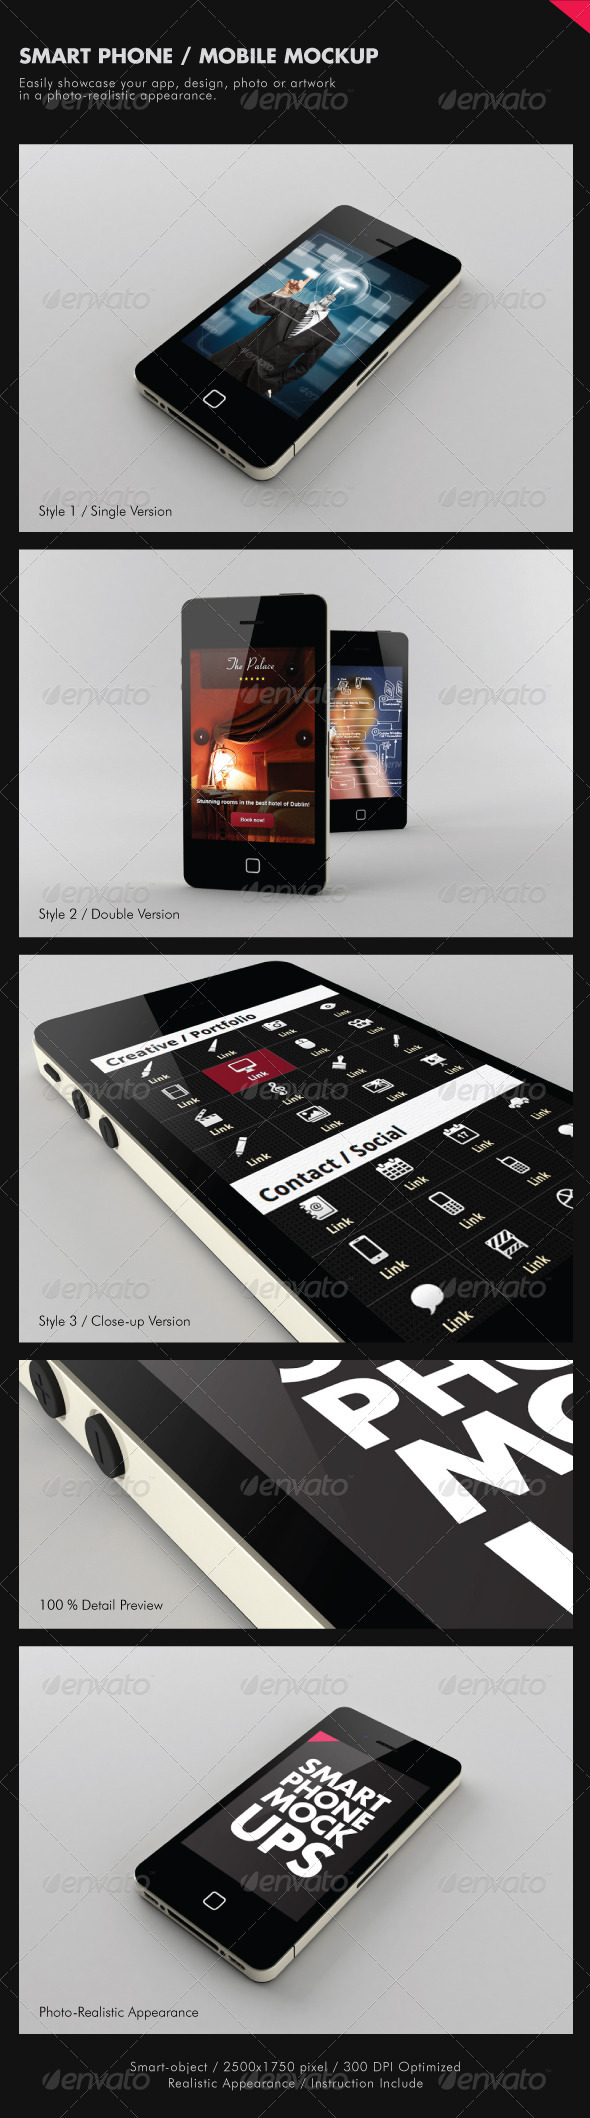 Smart Phone / Mobile Mock-ups - Mobile Displays